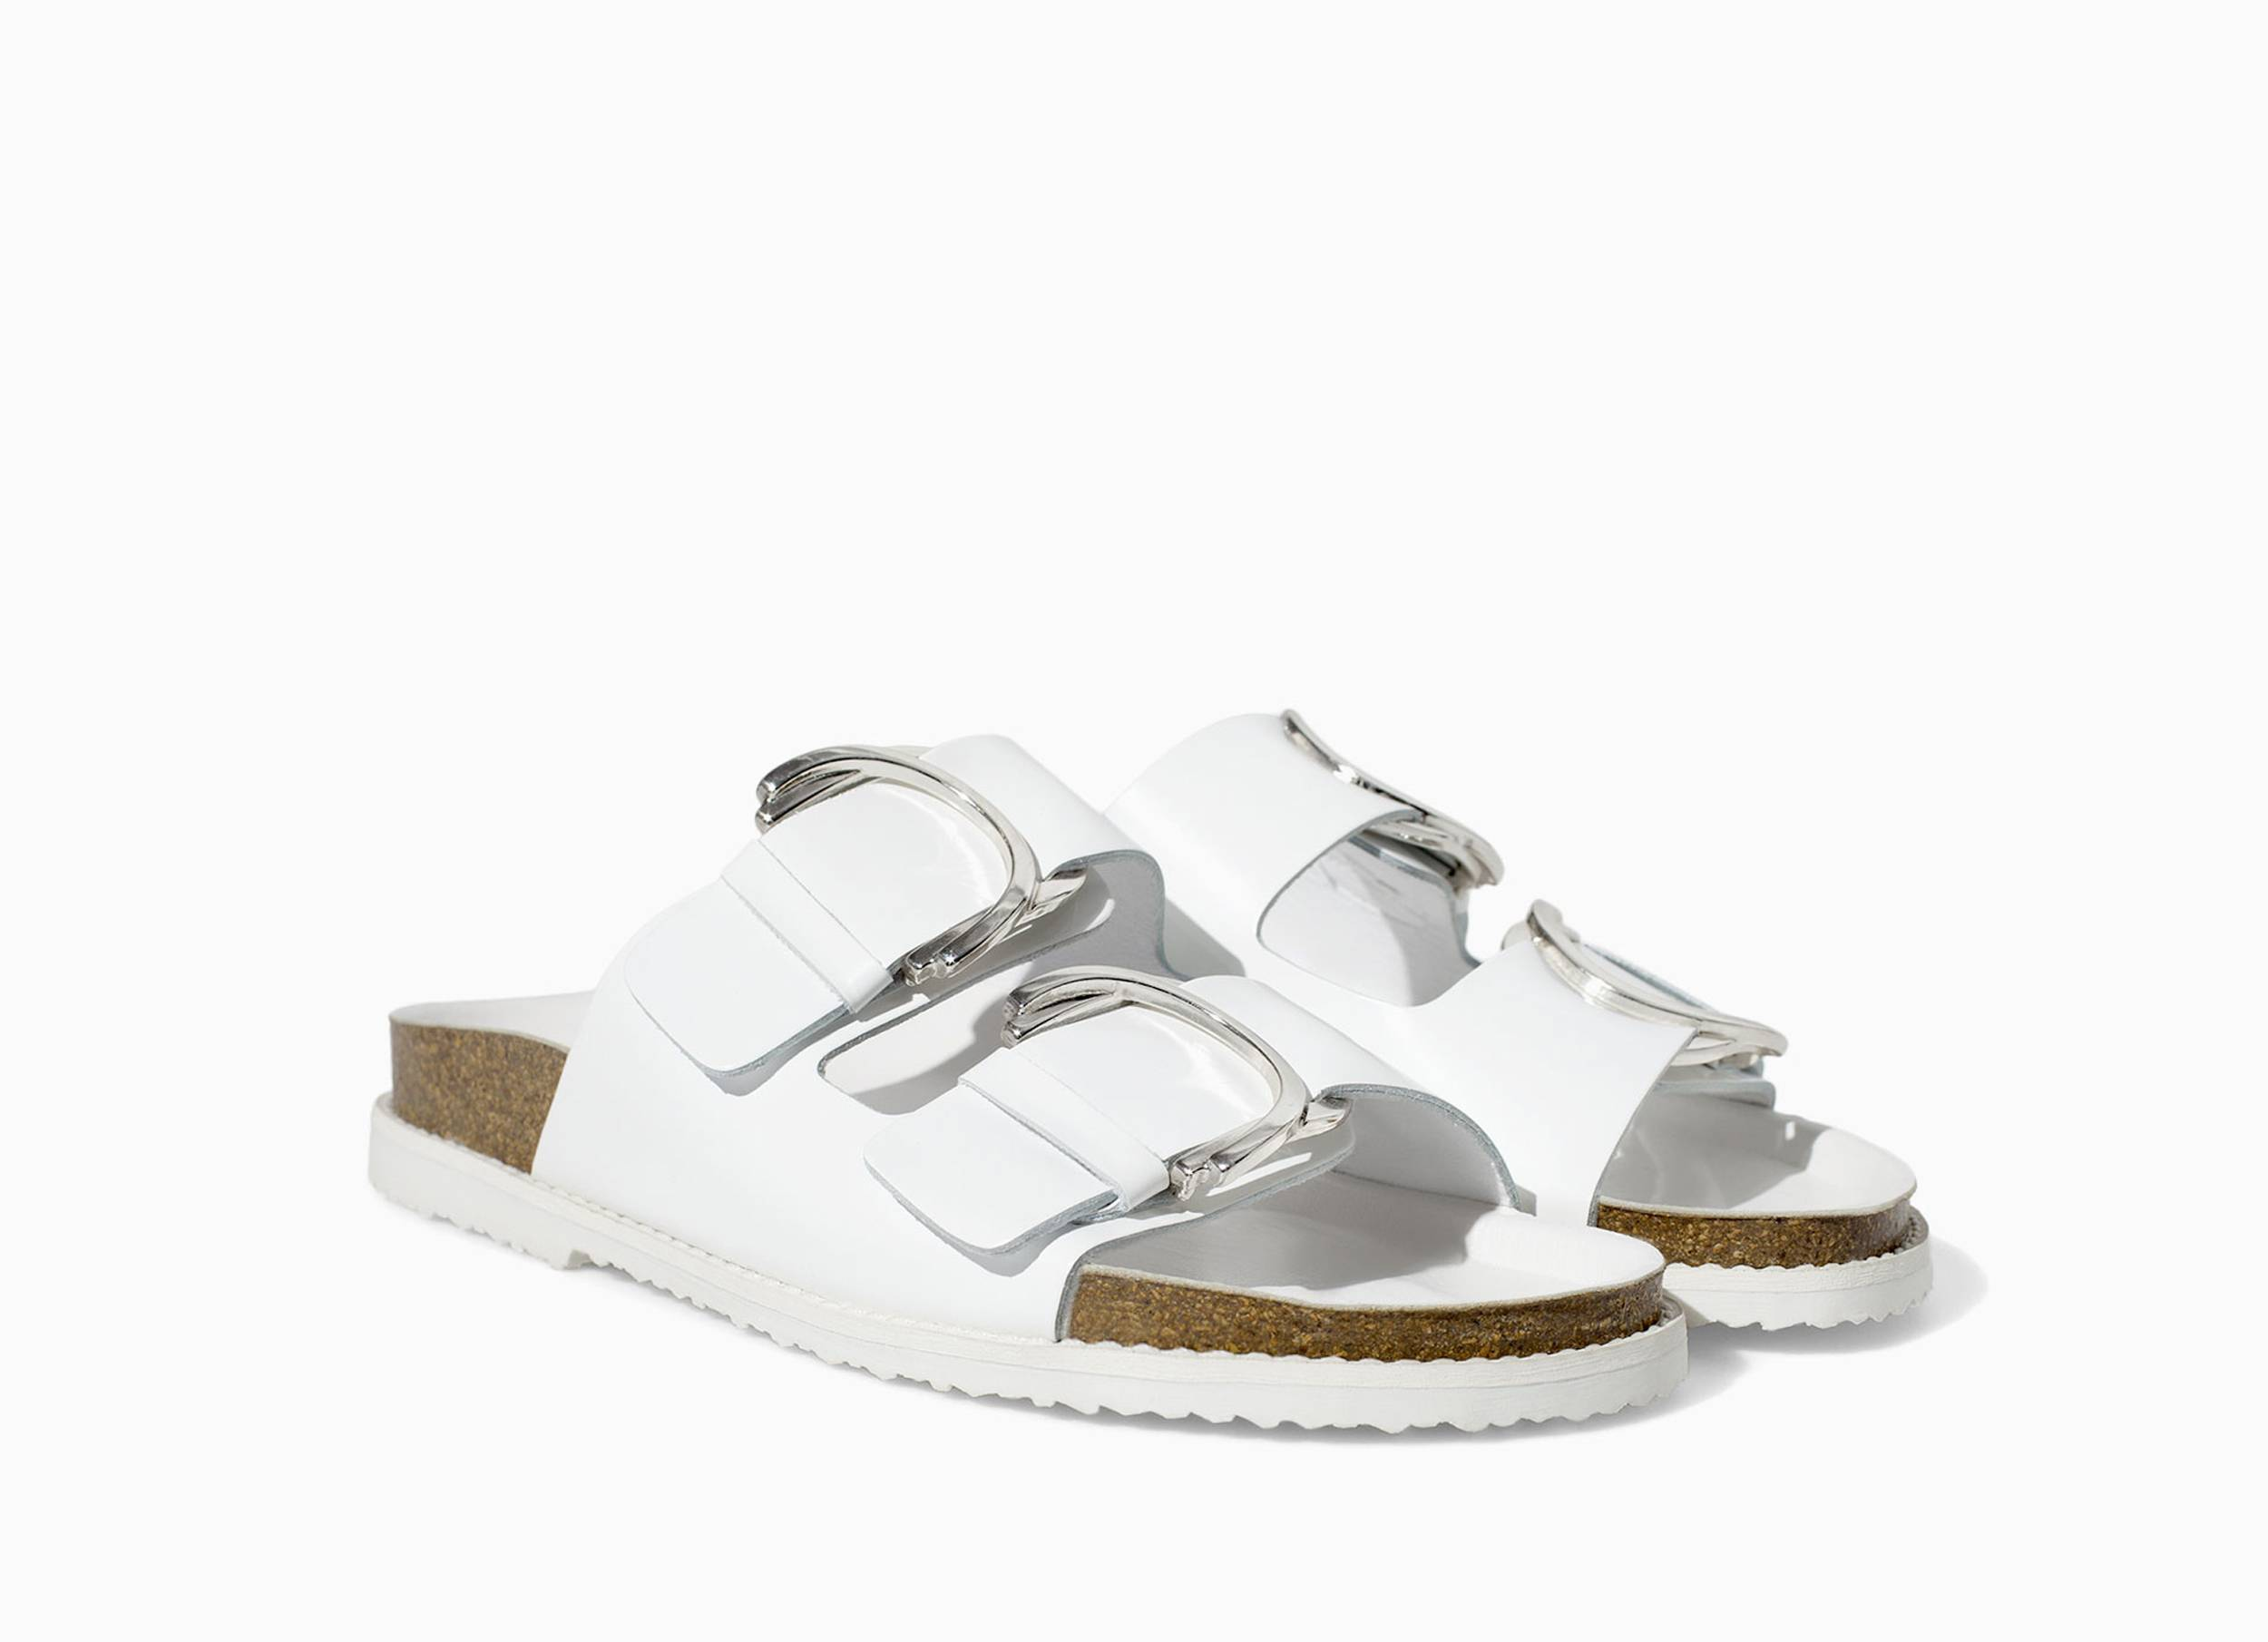 This pair of white sandals with buckles is one of the wardrobe essentials for summer, according to Dana Avidan-Cohn, a senior editor at InStyle magazine.